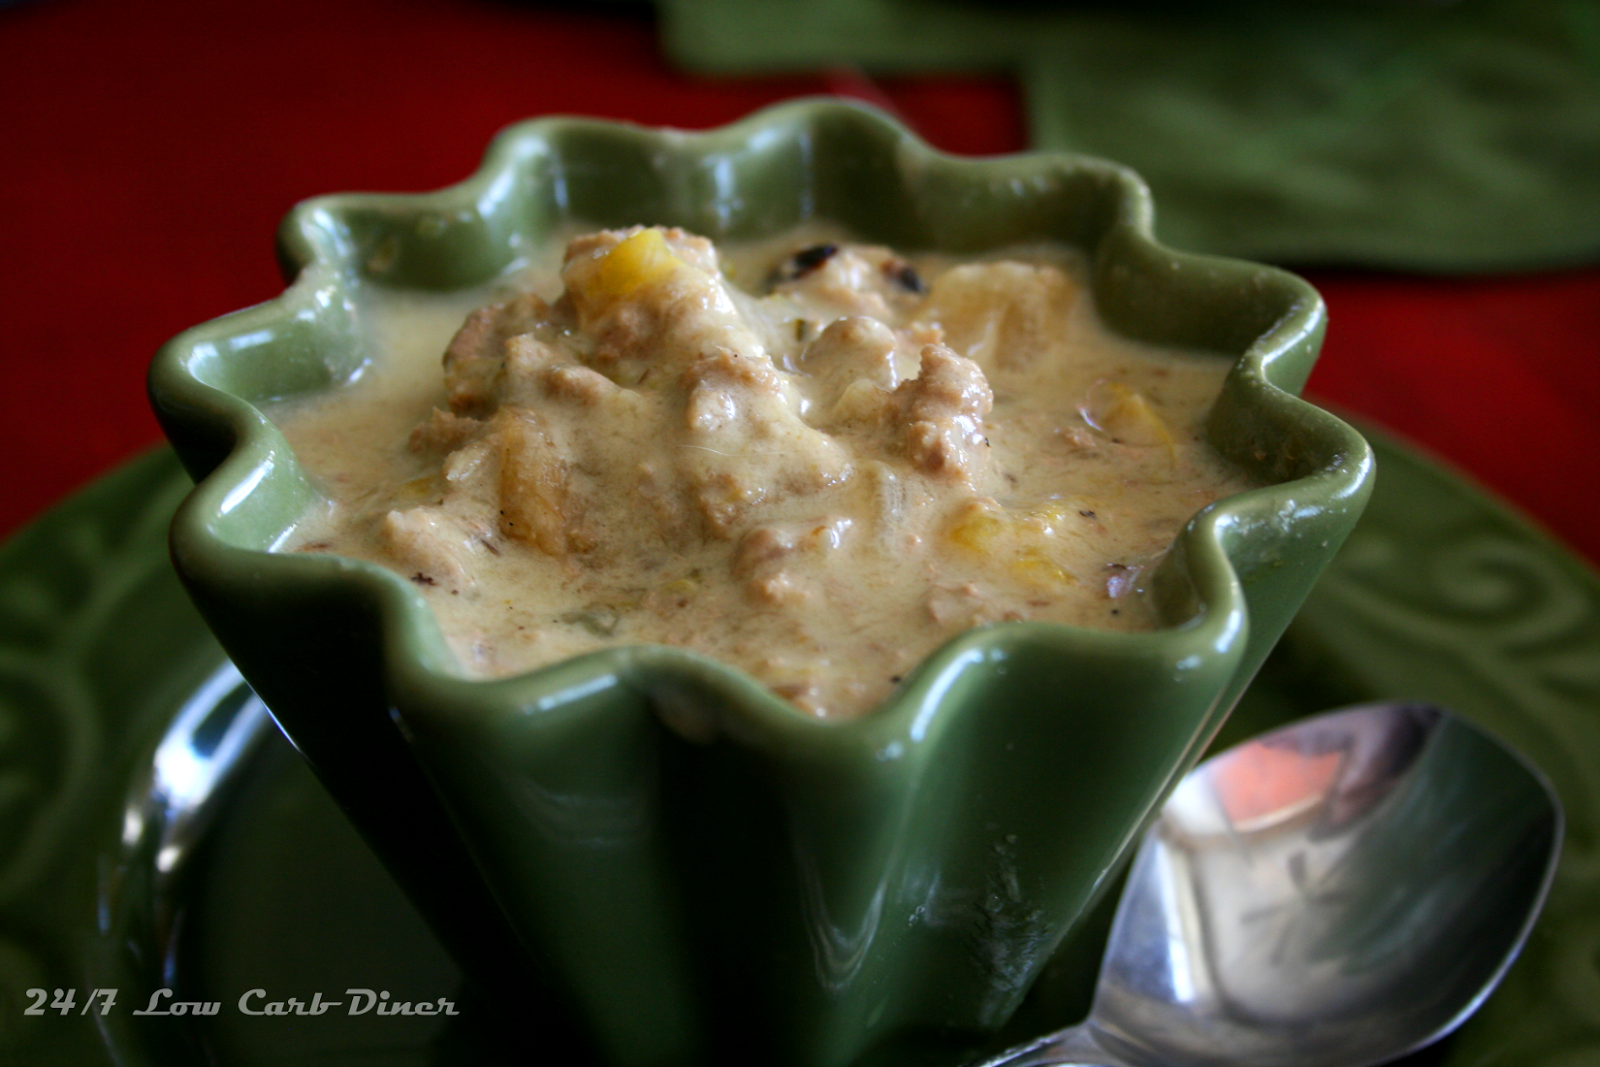 24/7 Low Carb Diner: Albuquerque Turkey White Chili